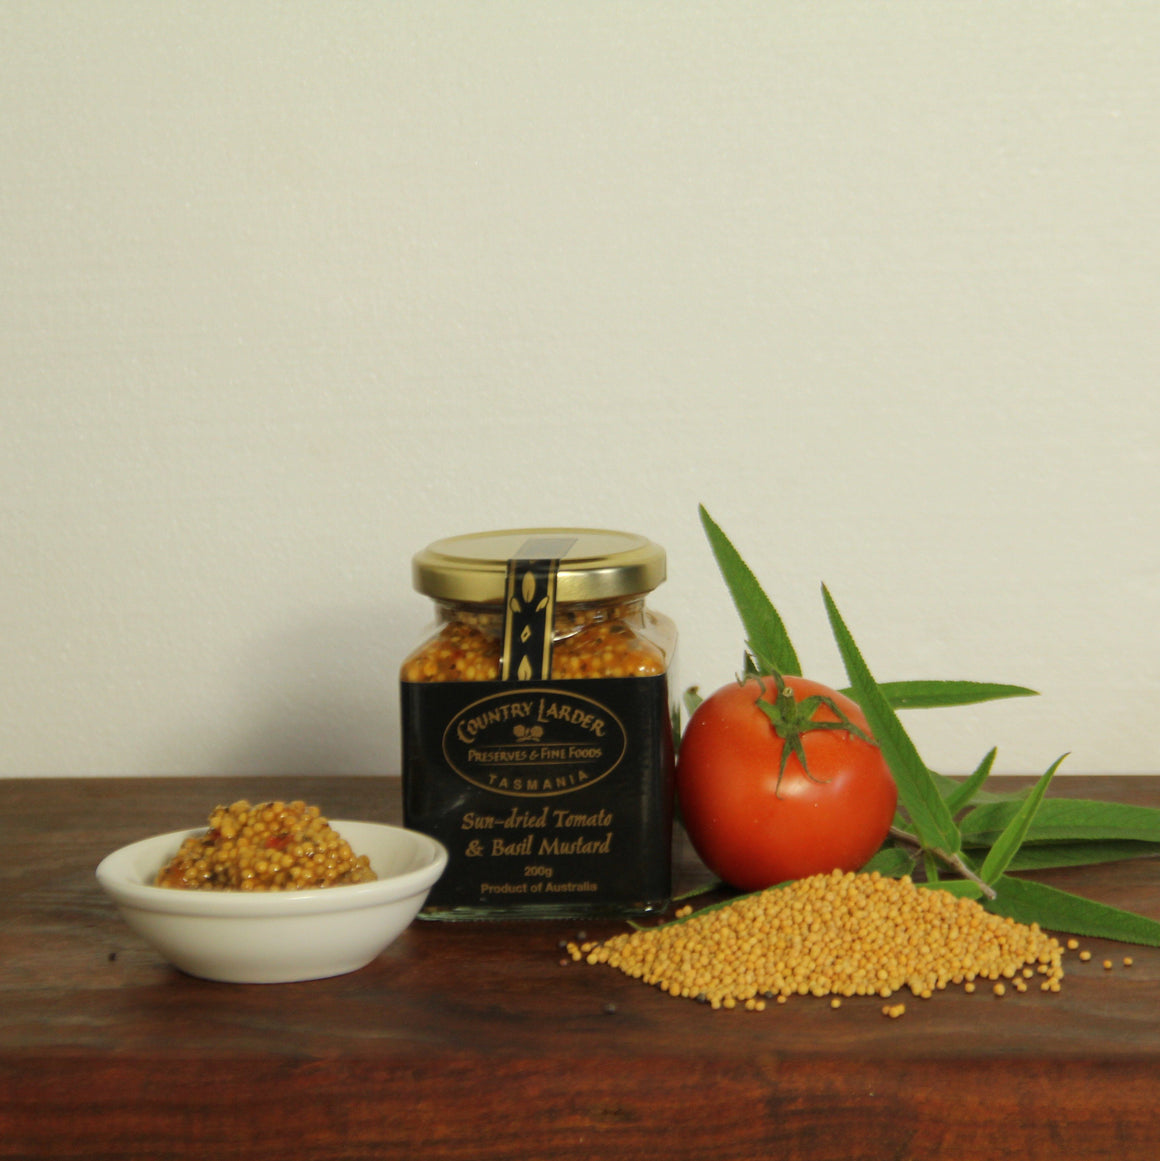 Country Larder Preserves Sundried Tomato and Basil Mustard